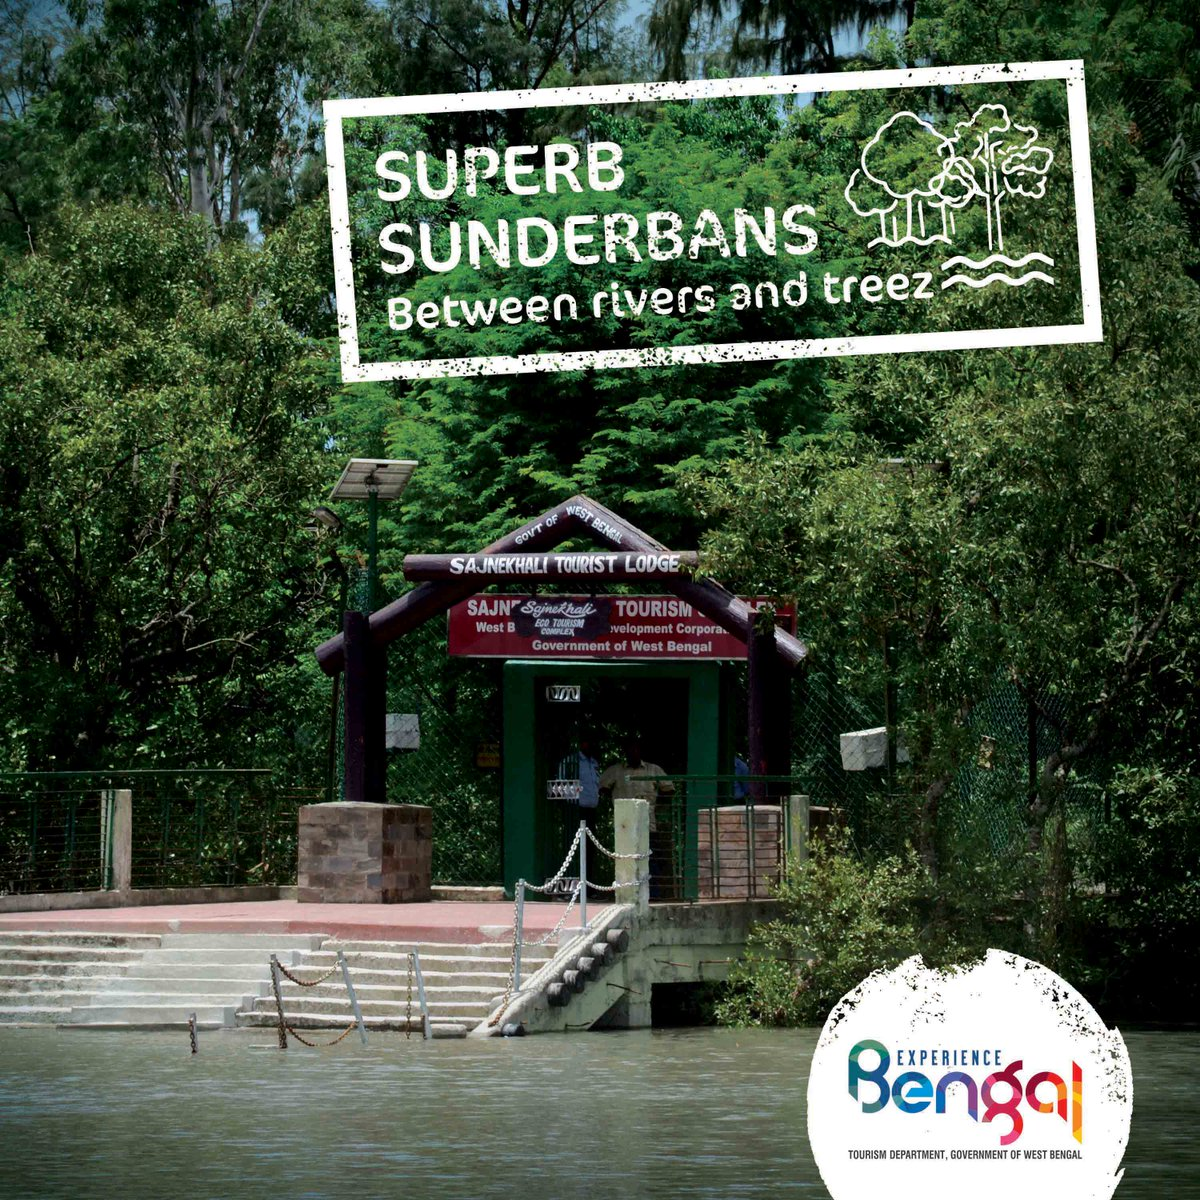 Spend some quality time surrounded by the greenery and flowing waters that define the Sundarbans.   Come, explore the Beauty that is Bengal at http://bit.ly/2ZMvmyv  #BengalTourism #ExperienceBengal #Sundarbanspic.twitter.com/oGQWbAzfii